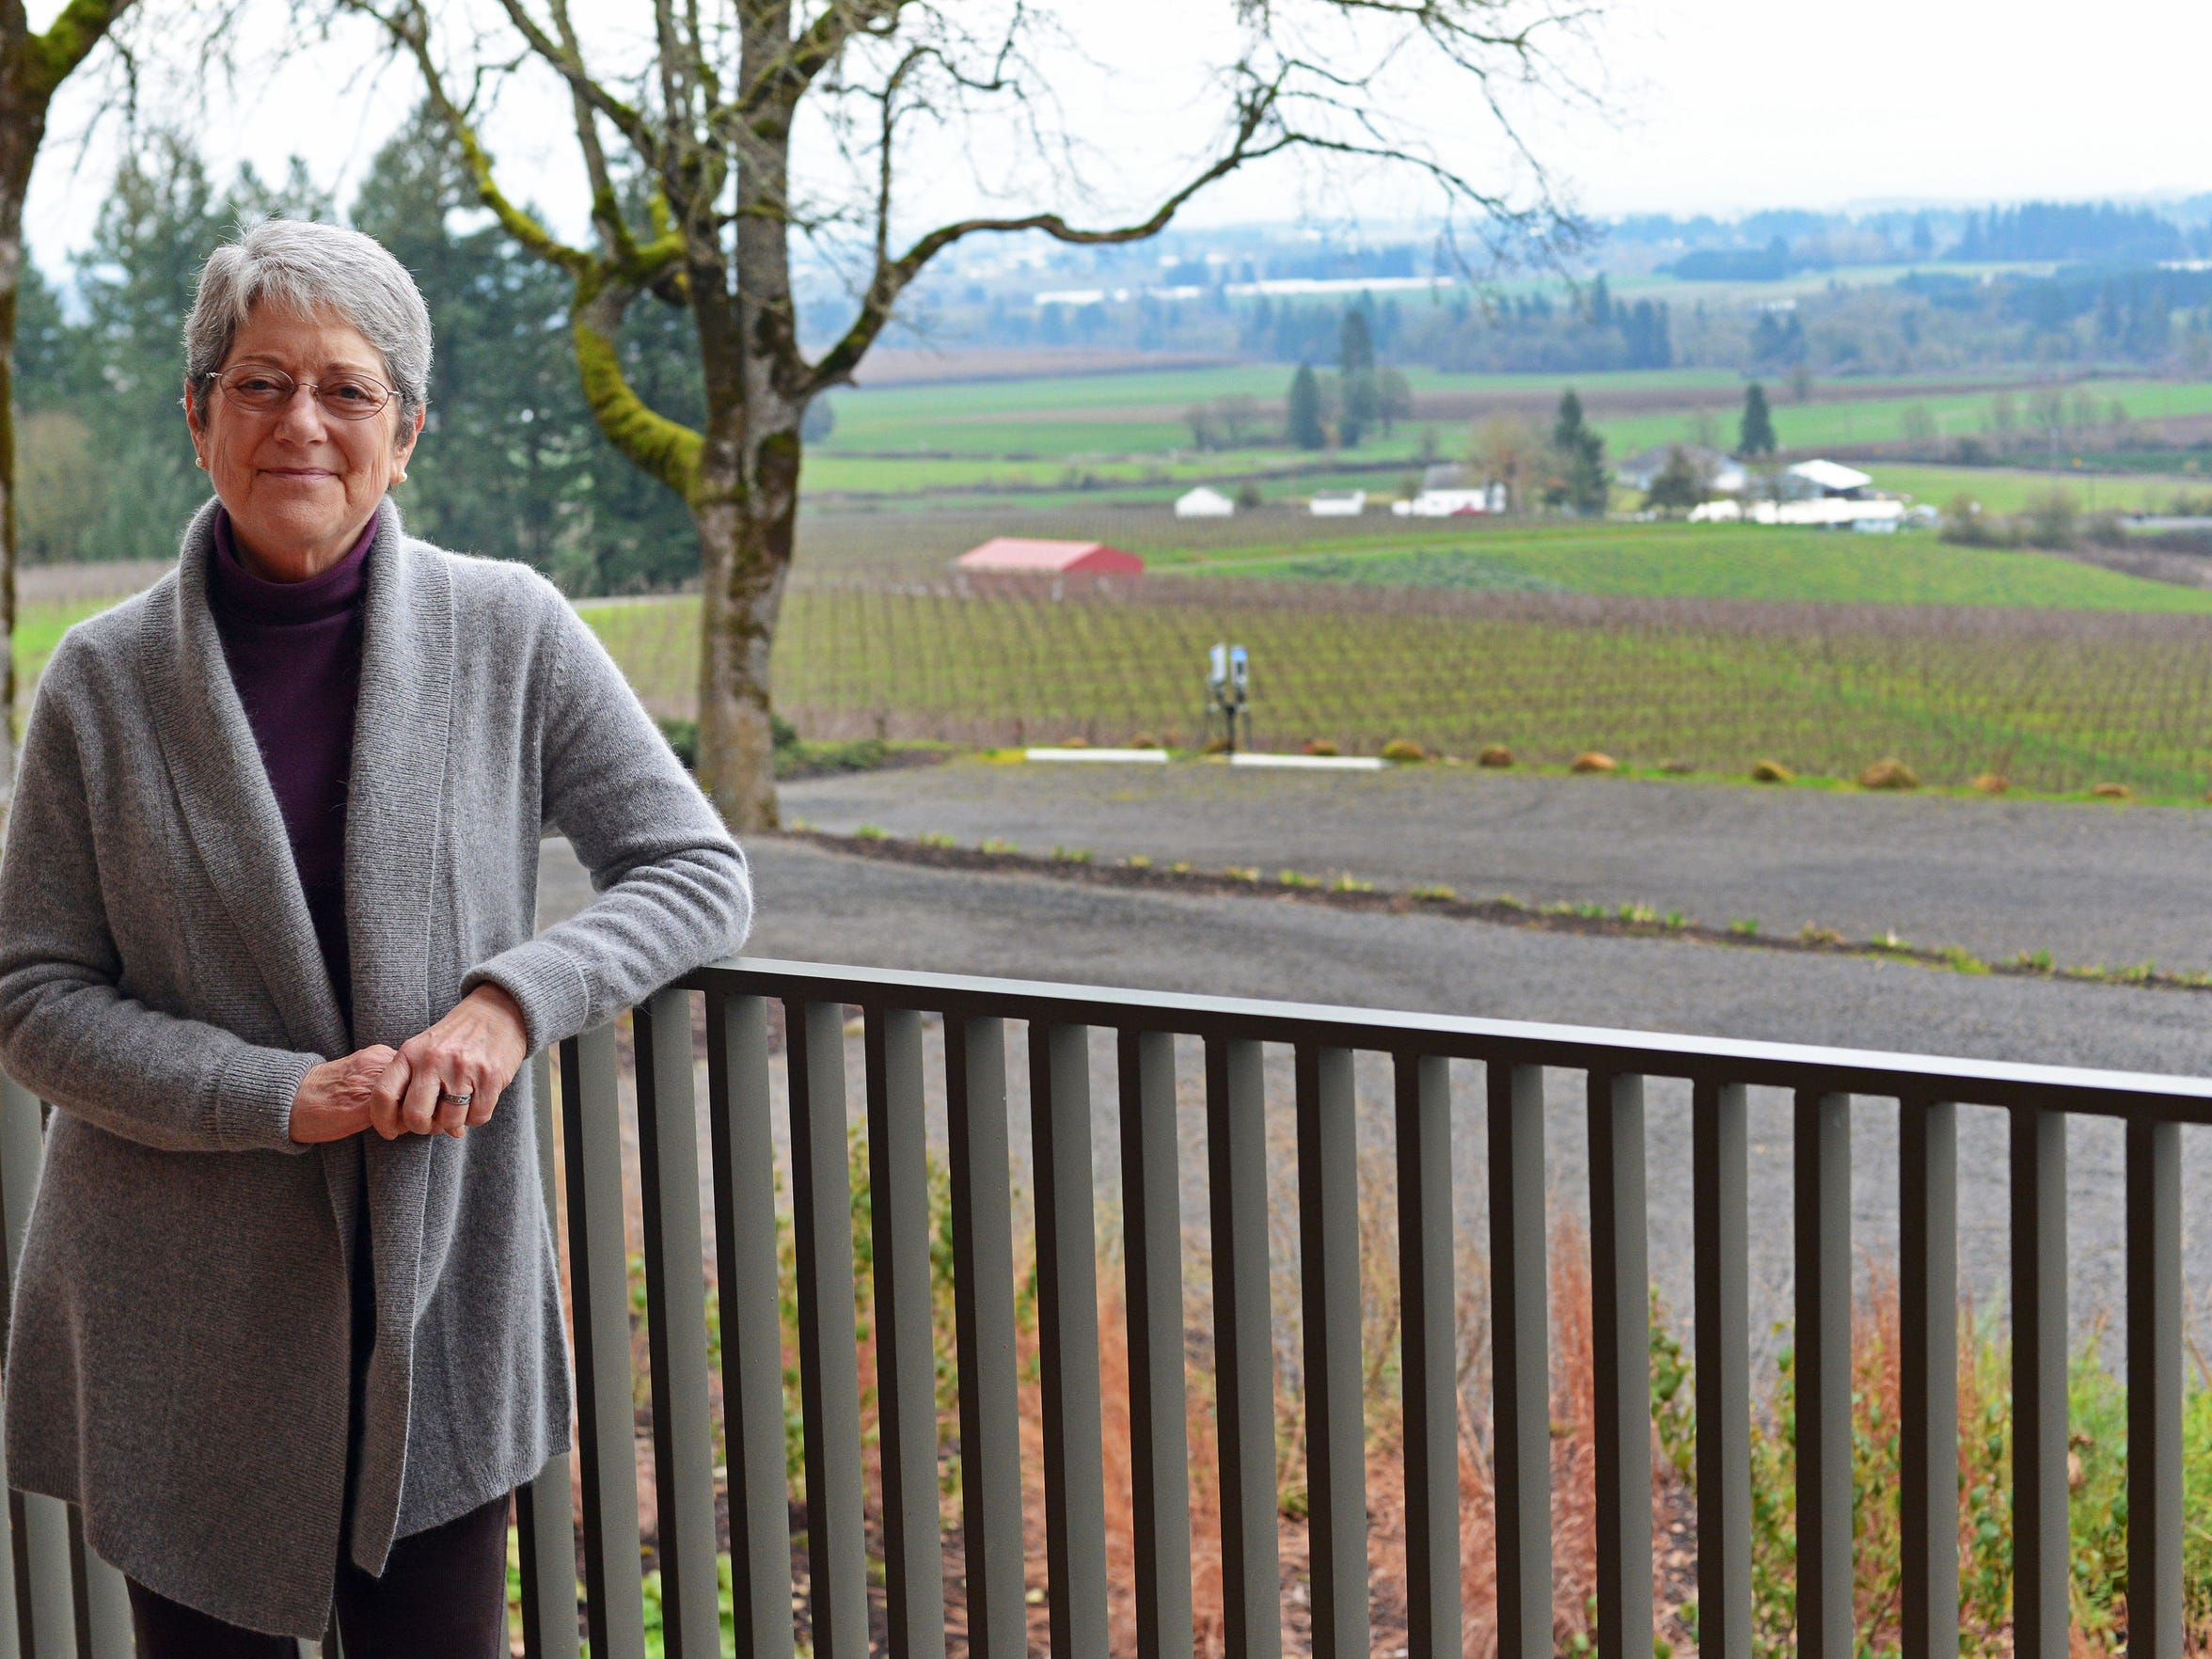 Susan Sokol Blosser, co-founder of Sokol Blosser Winery,